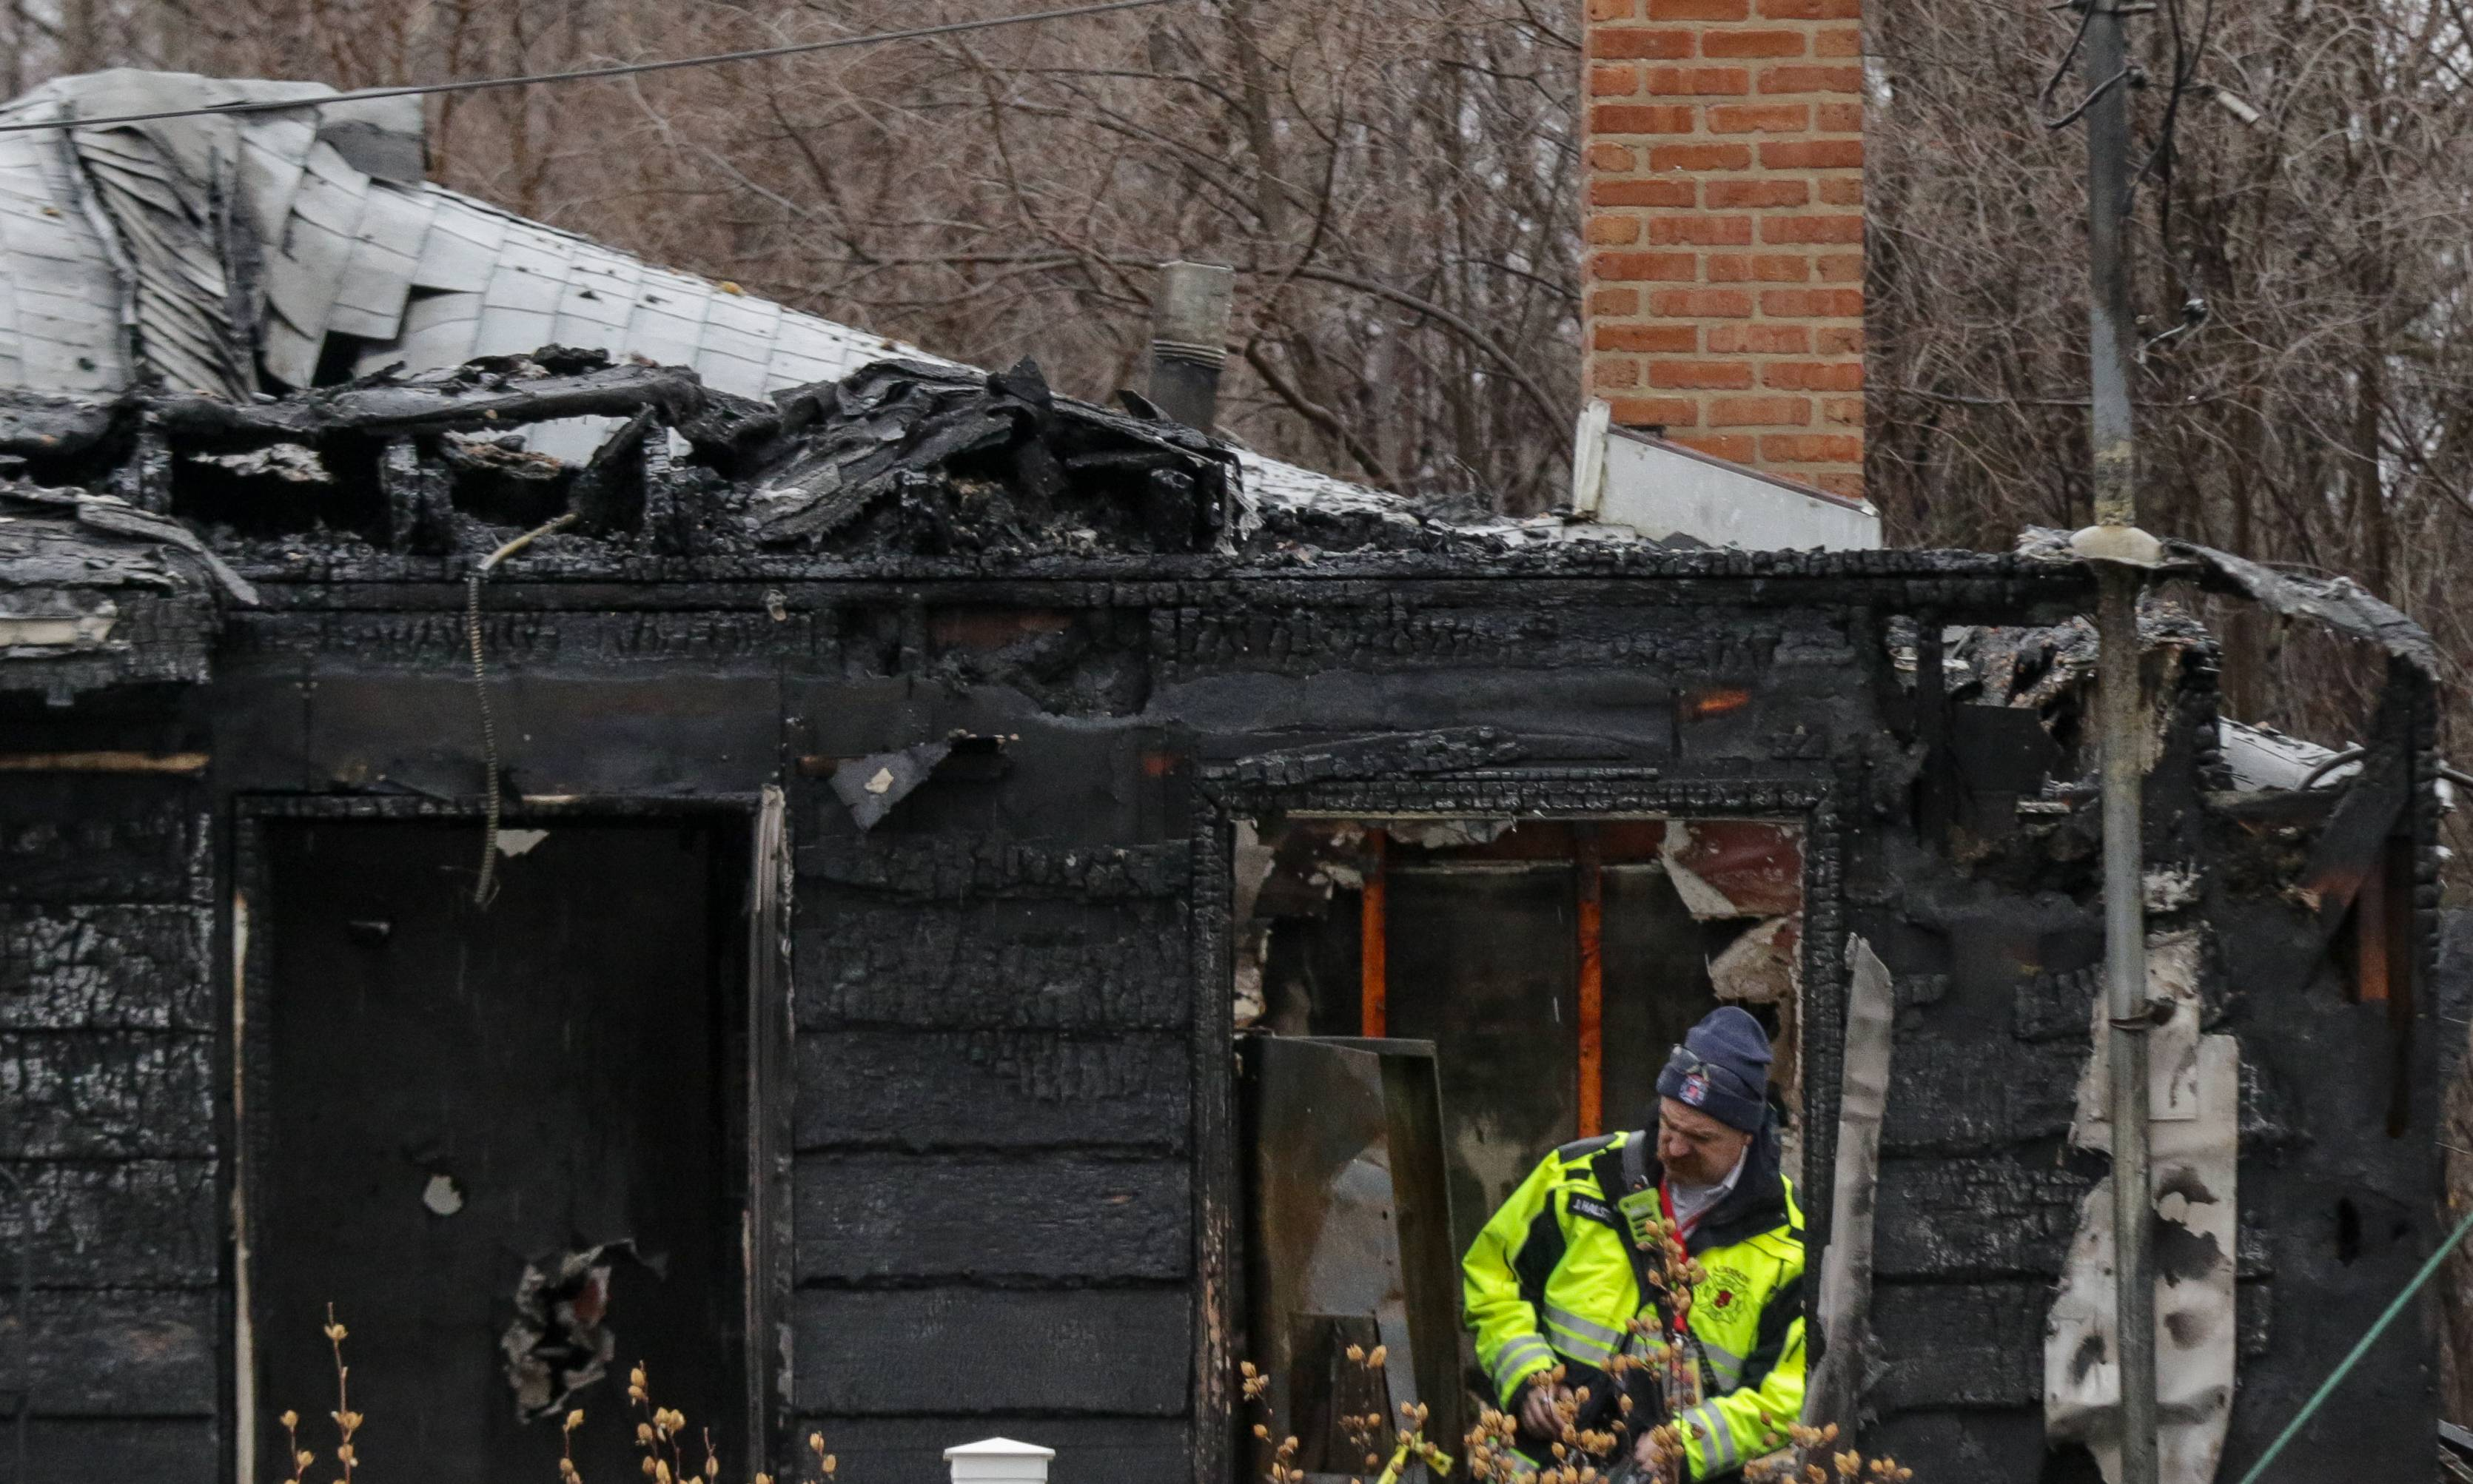 Firefighters investigate the aftermath of a fatal fire in the 700 block of Ellsworth Avenue in Addison on Monday.